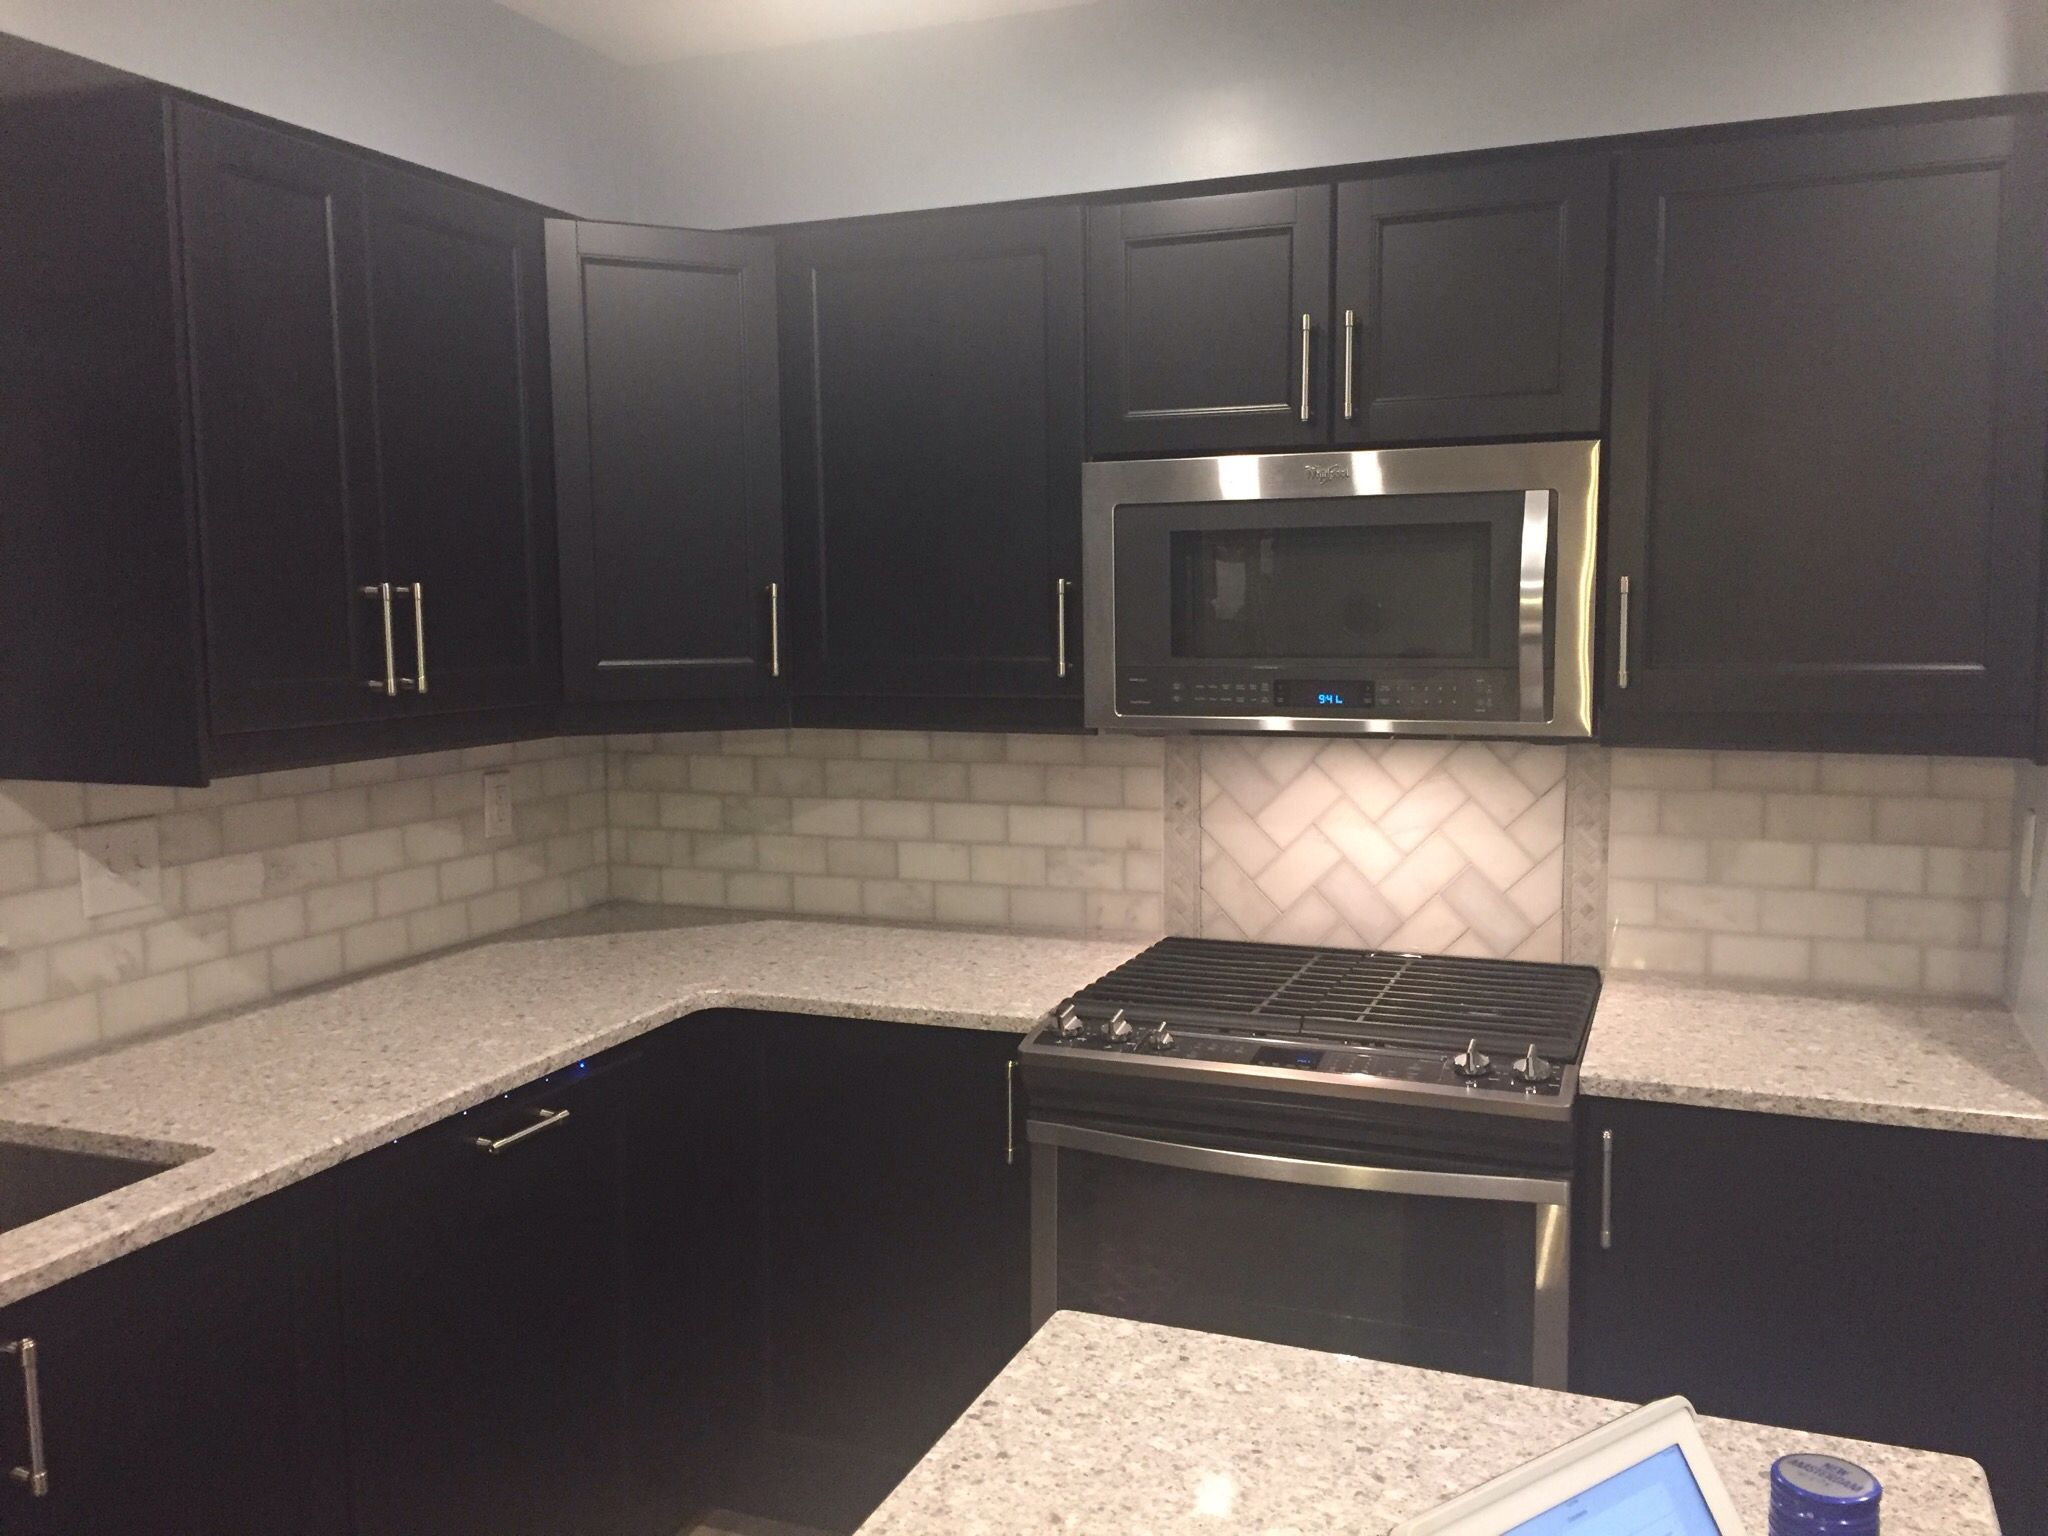 3 X 6 Marble subway tile backsplash, Ikea laxarby cabinets, quartz ...